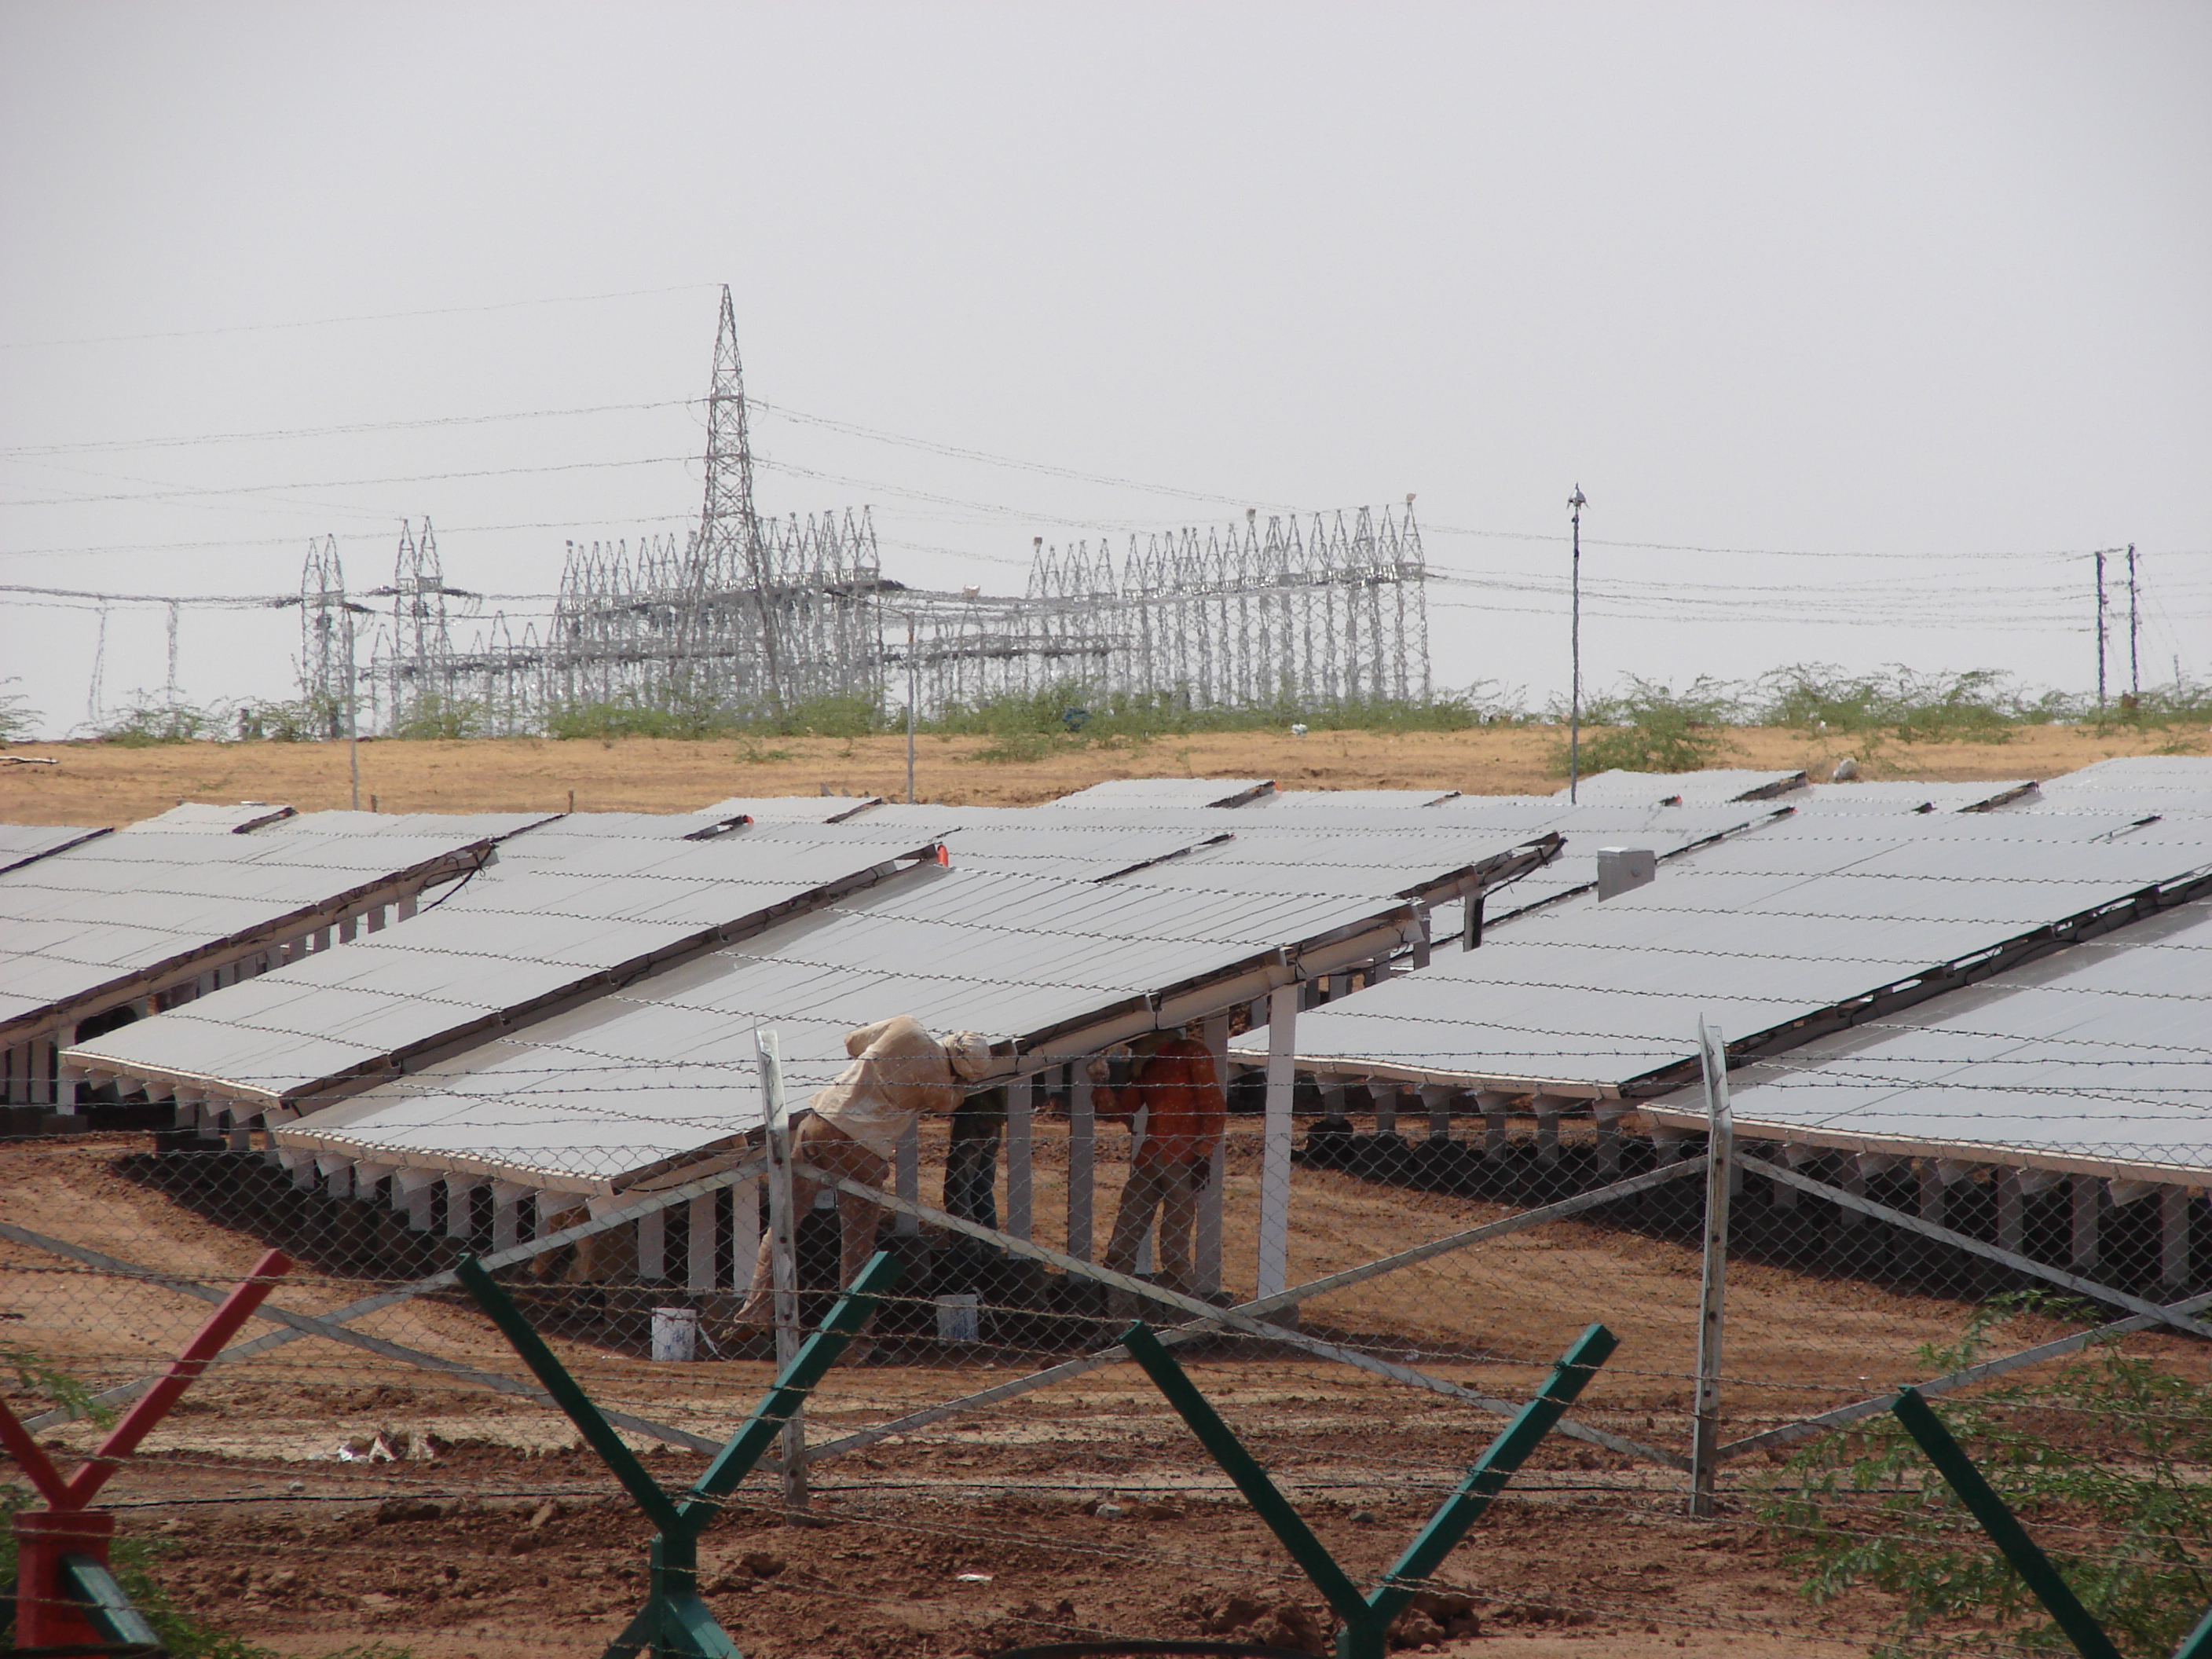 India's total solar energy generation capacity stands at more than 5,000 MW